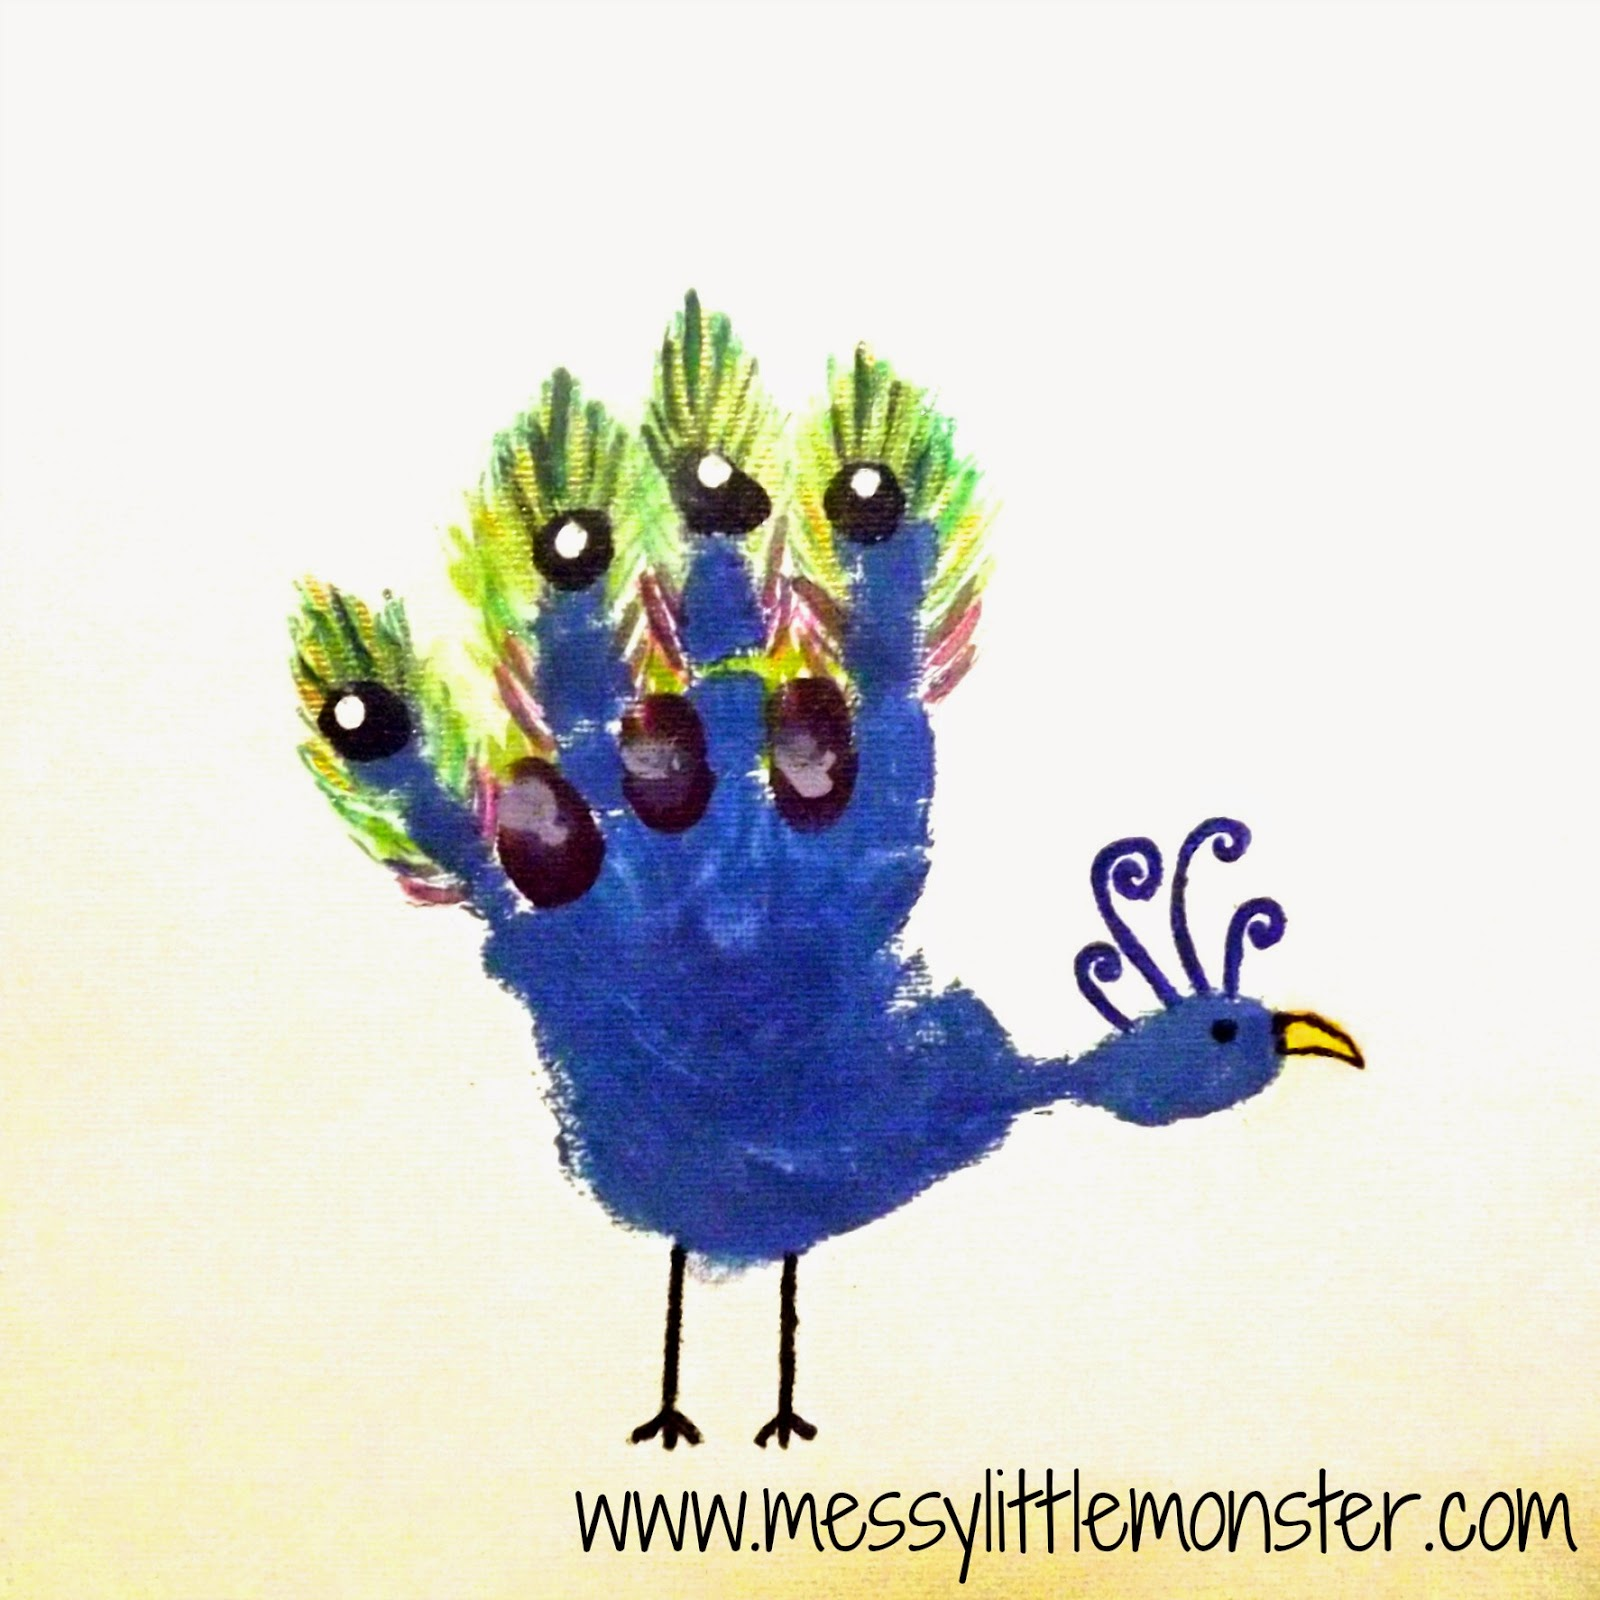 Peacock craft - Animal handprints on canvas.  Simple gift ideas for toddlers and preschoolers to make.